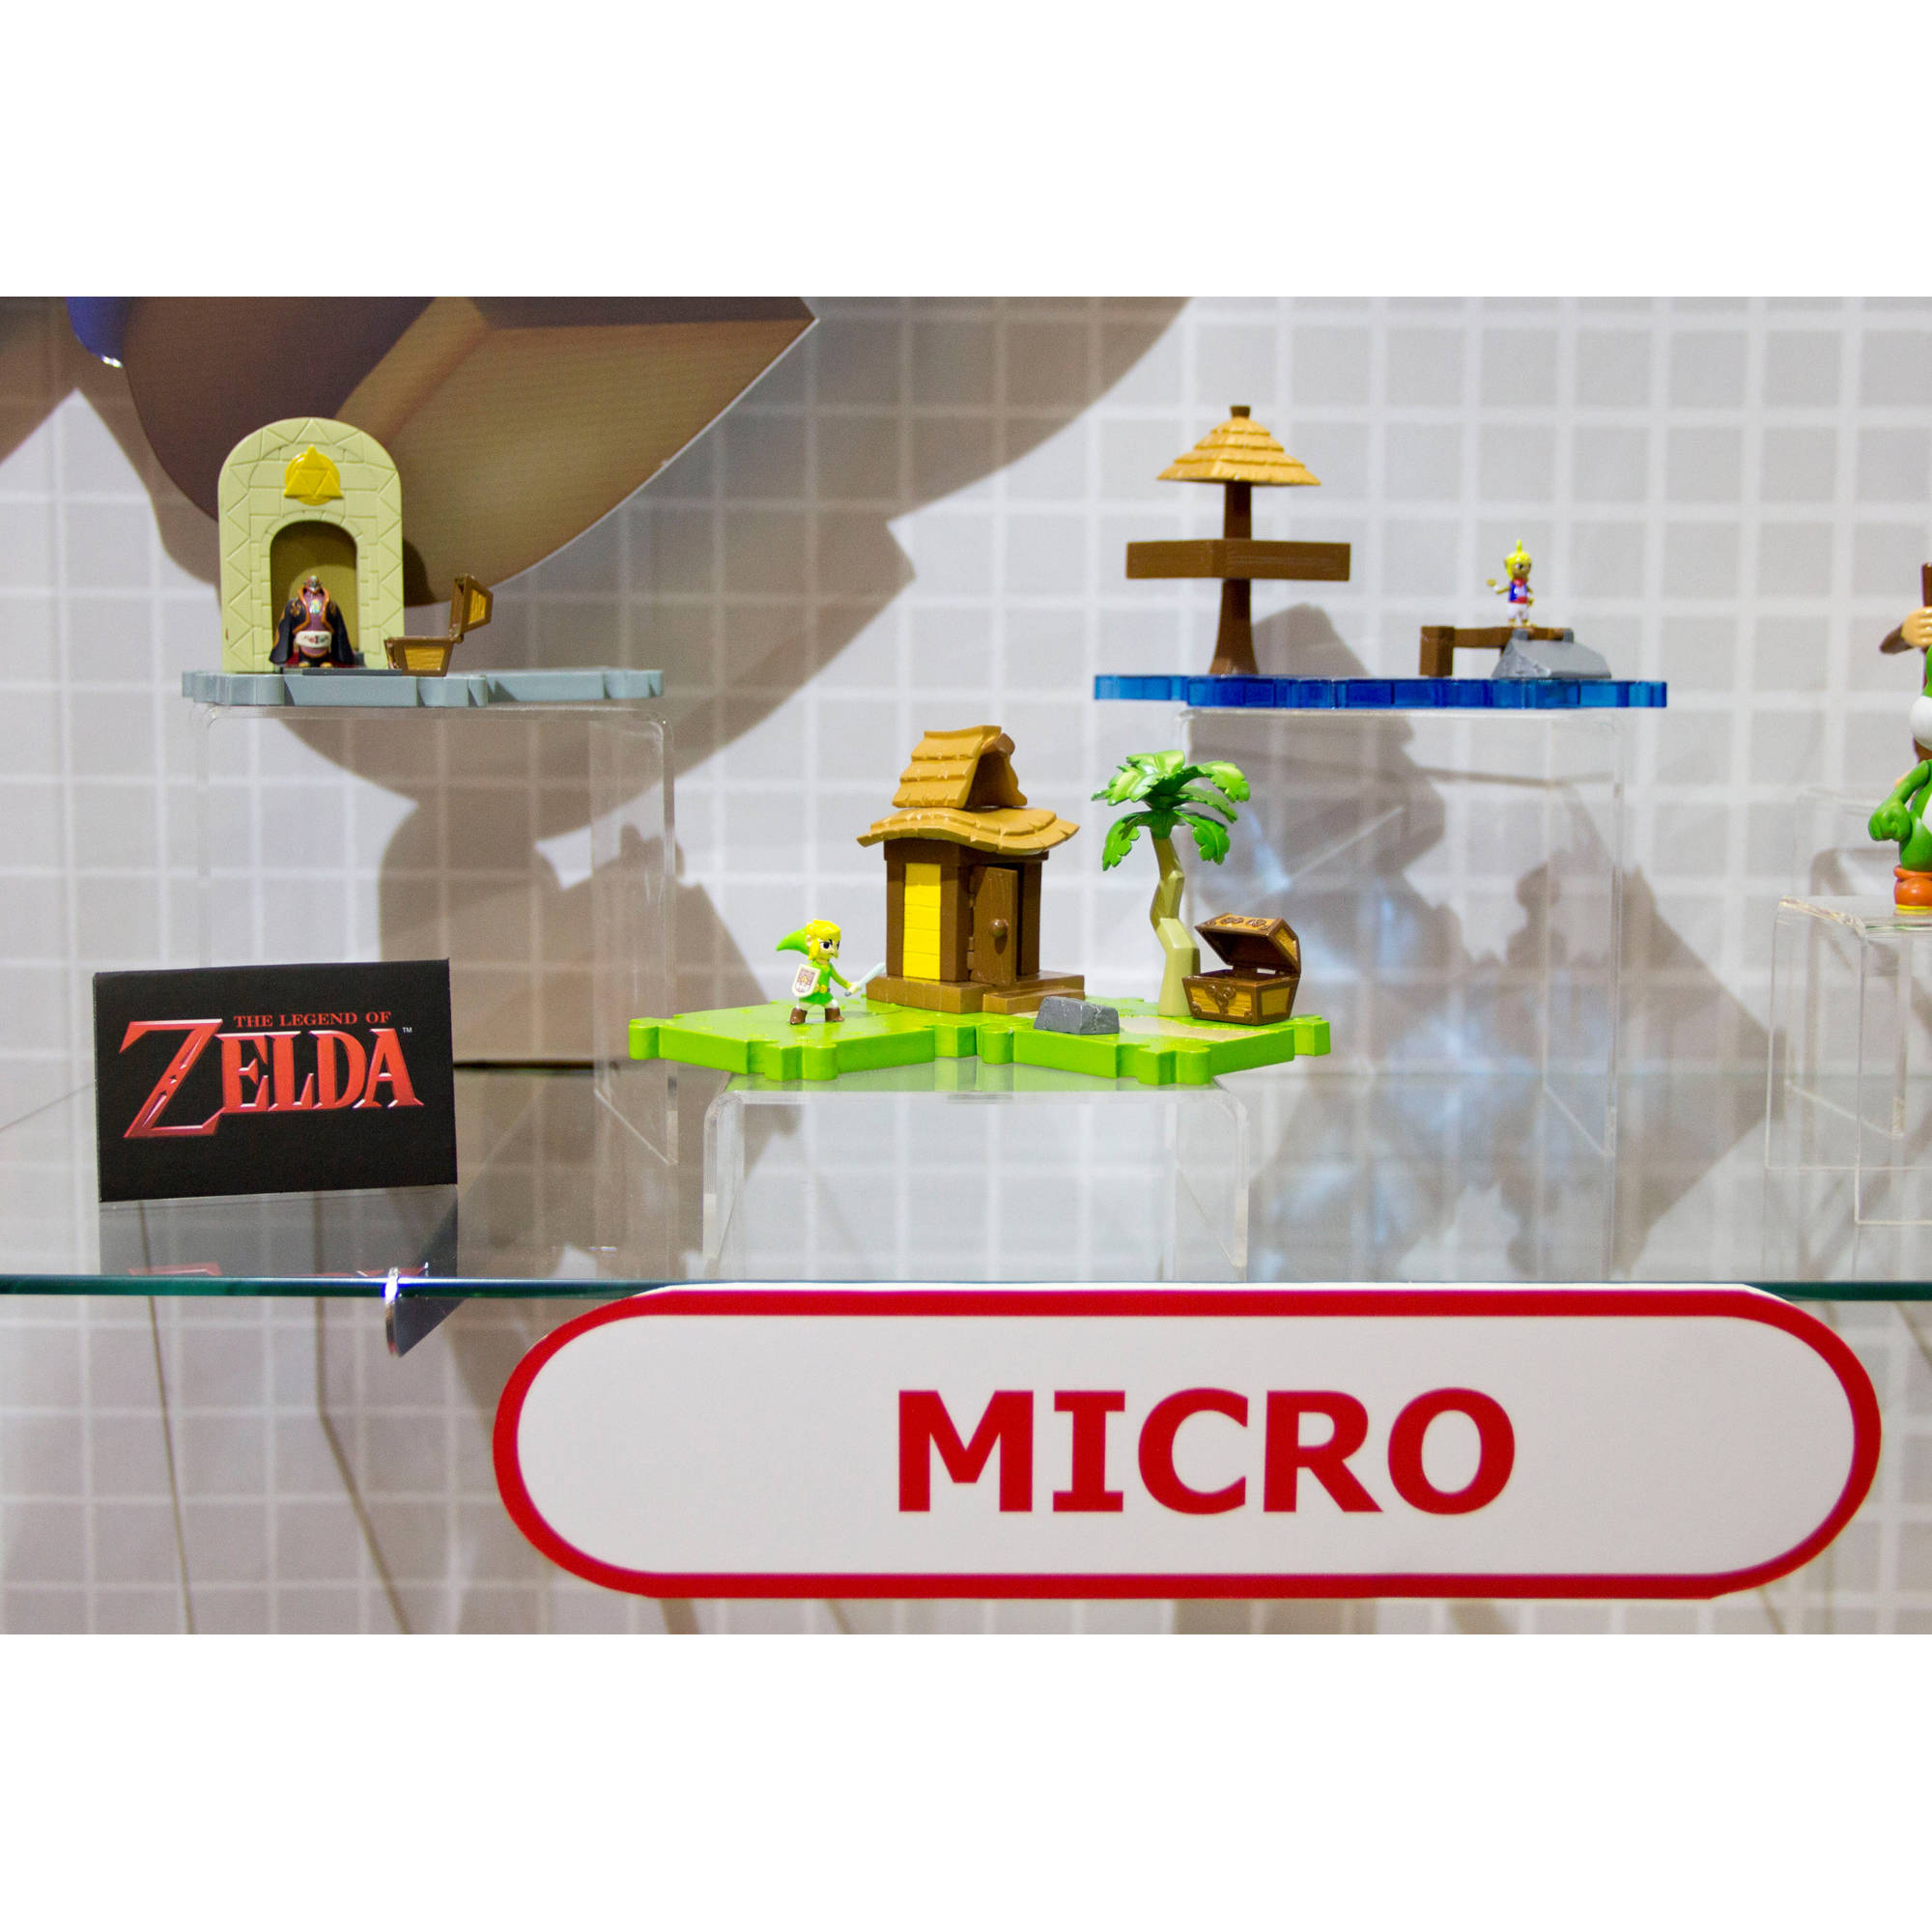 Micro Figure 3-Pack, Tetra Water/Ocean theme